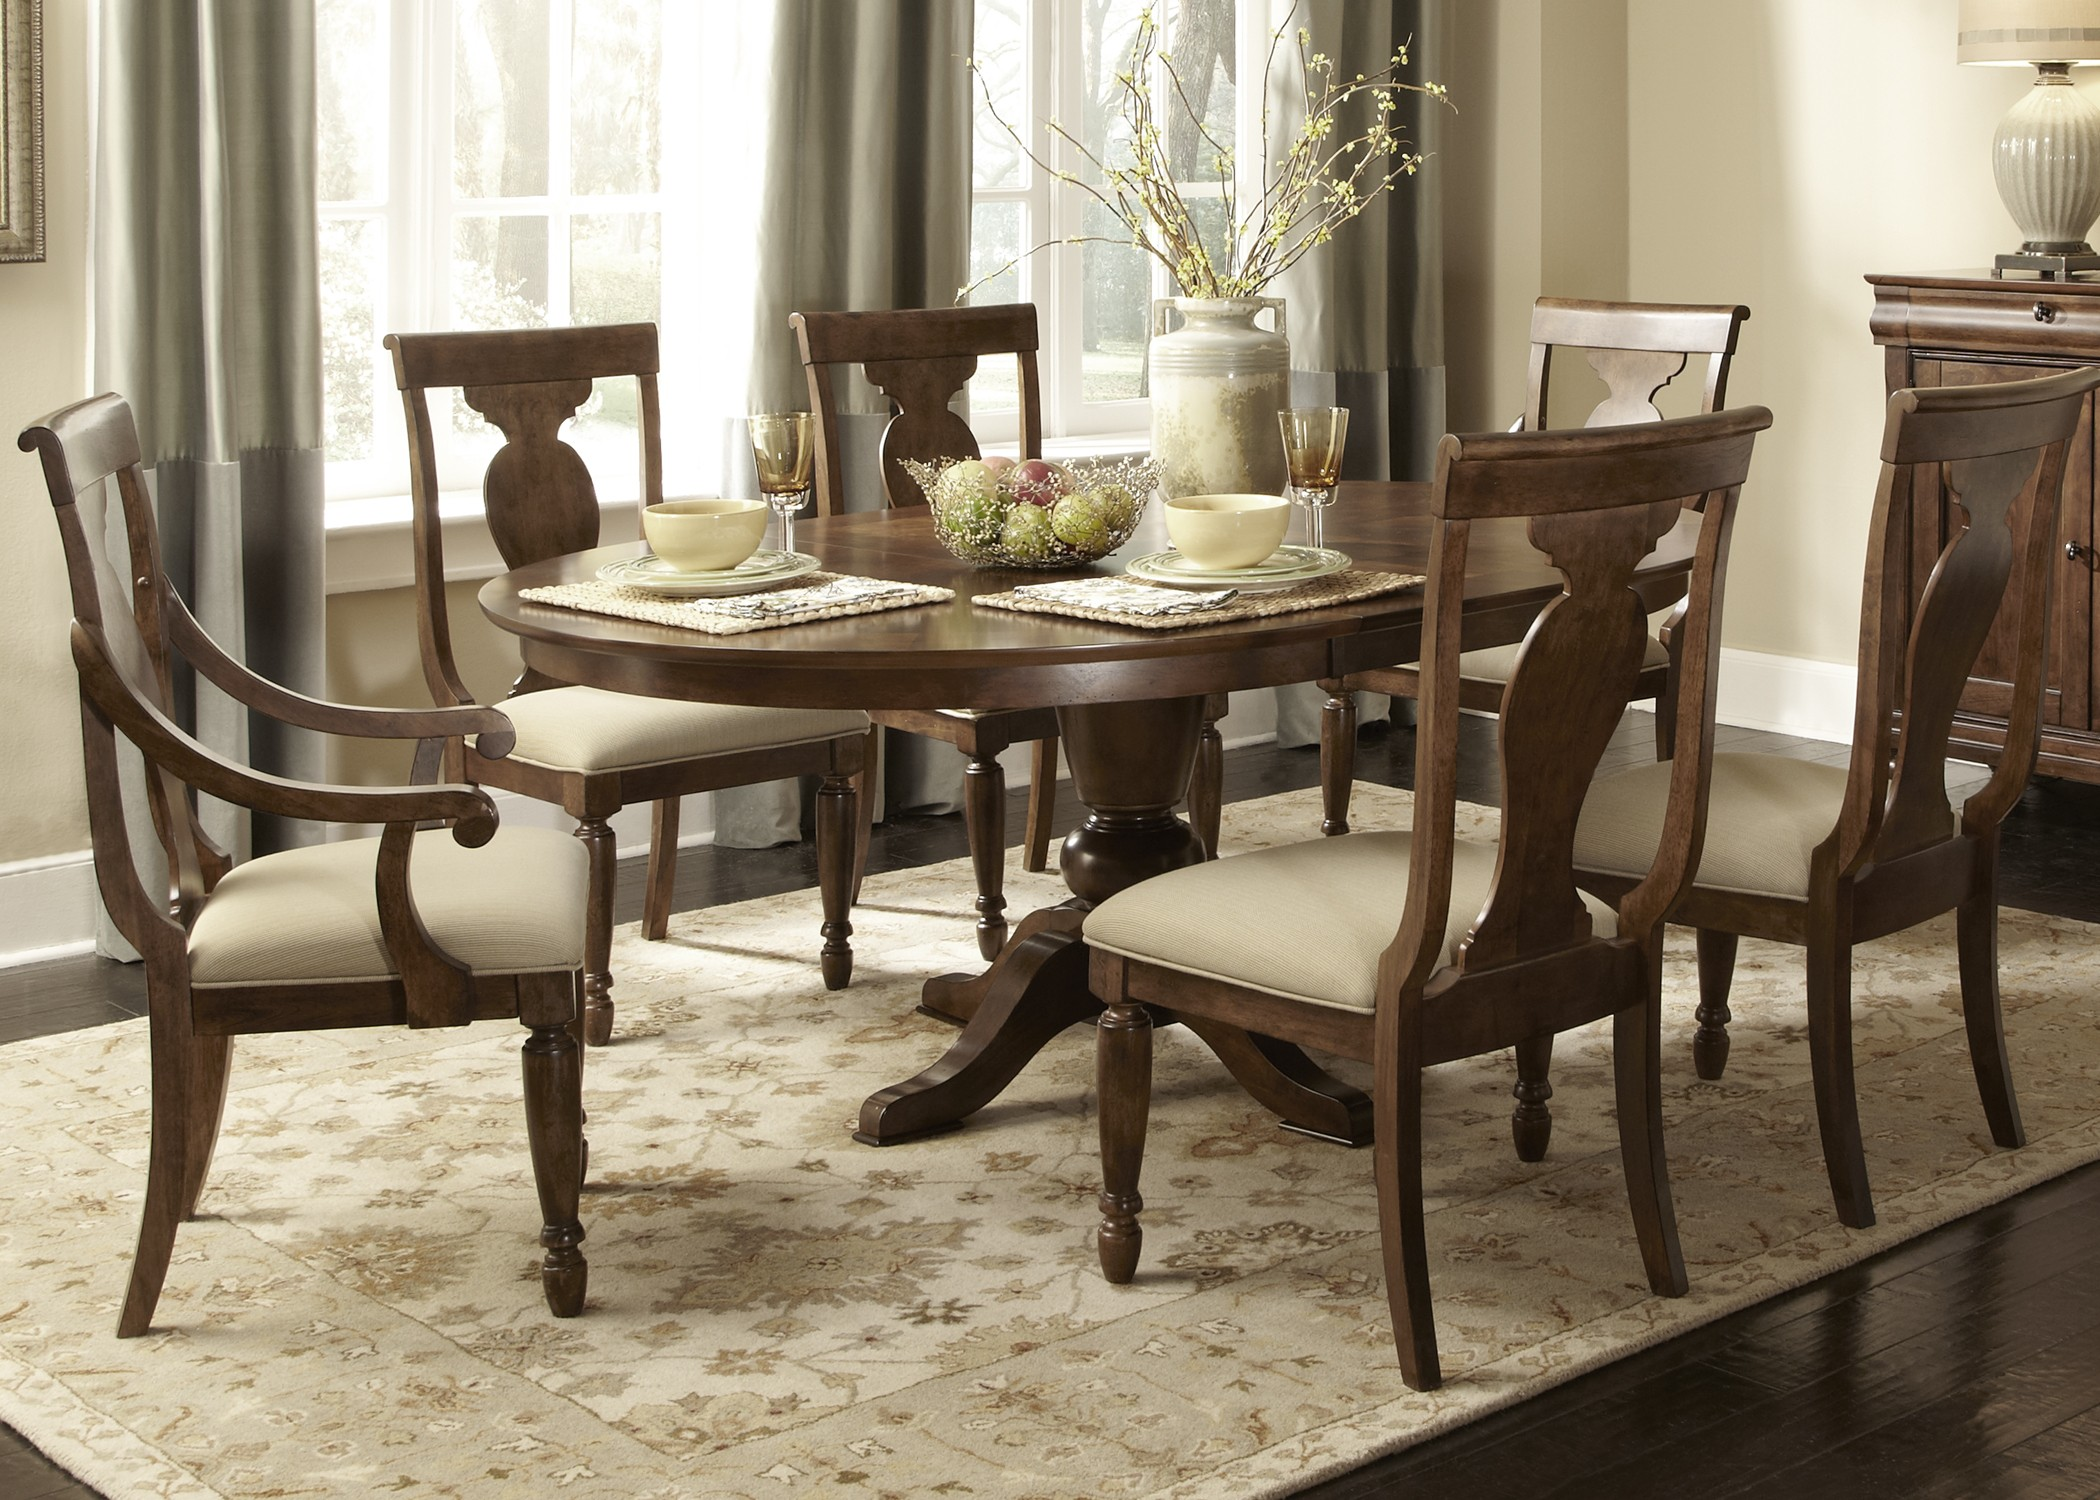 Rustic Tradition Oval Pedestal Dining Room Set From Liberty 589 T5472 P5472